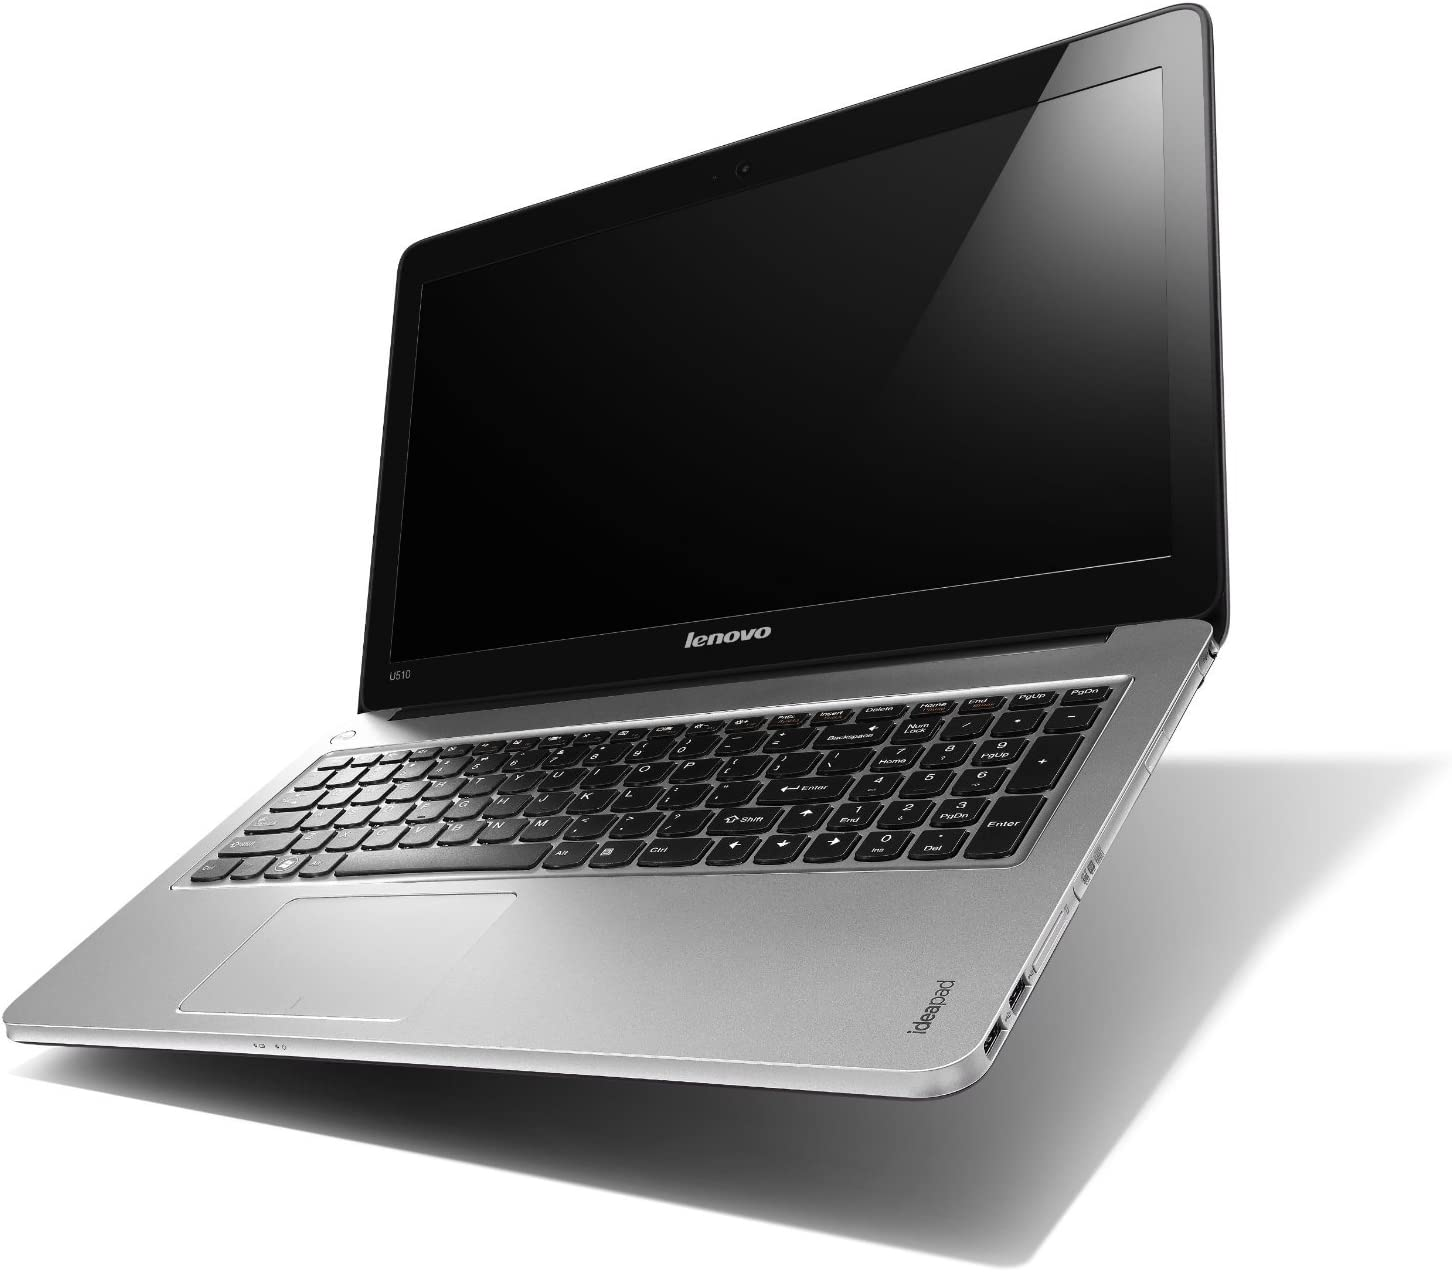 "Lenovo - IdeaPad U530 Touch Ultrabook 15.6"" Touch-Screen Laptop - 8GB Memory - 500GB Hard Drive - Silver/Black"